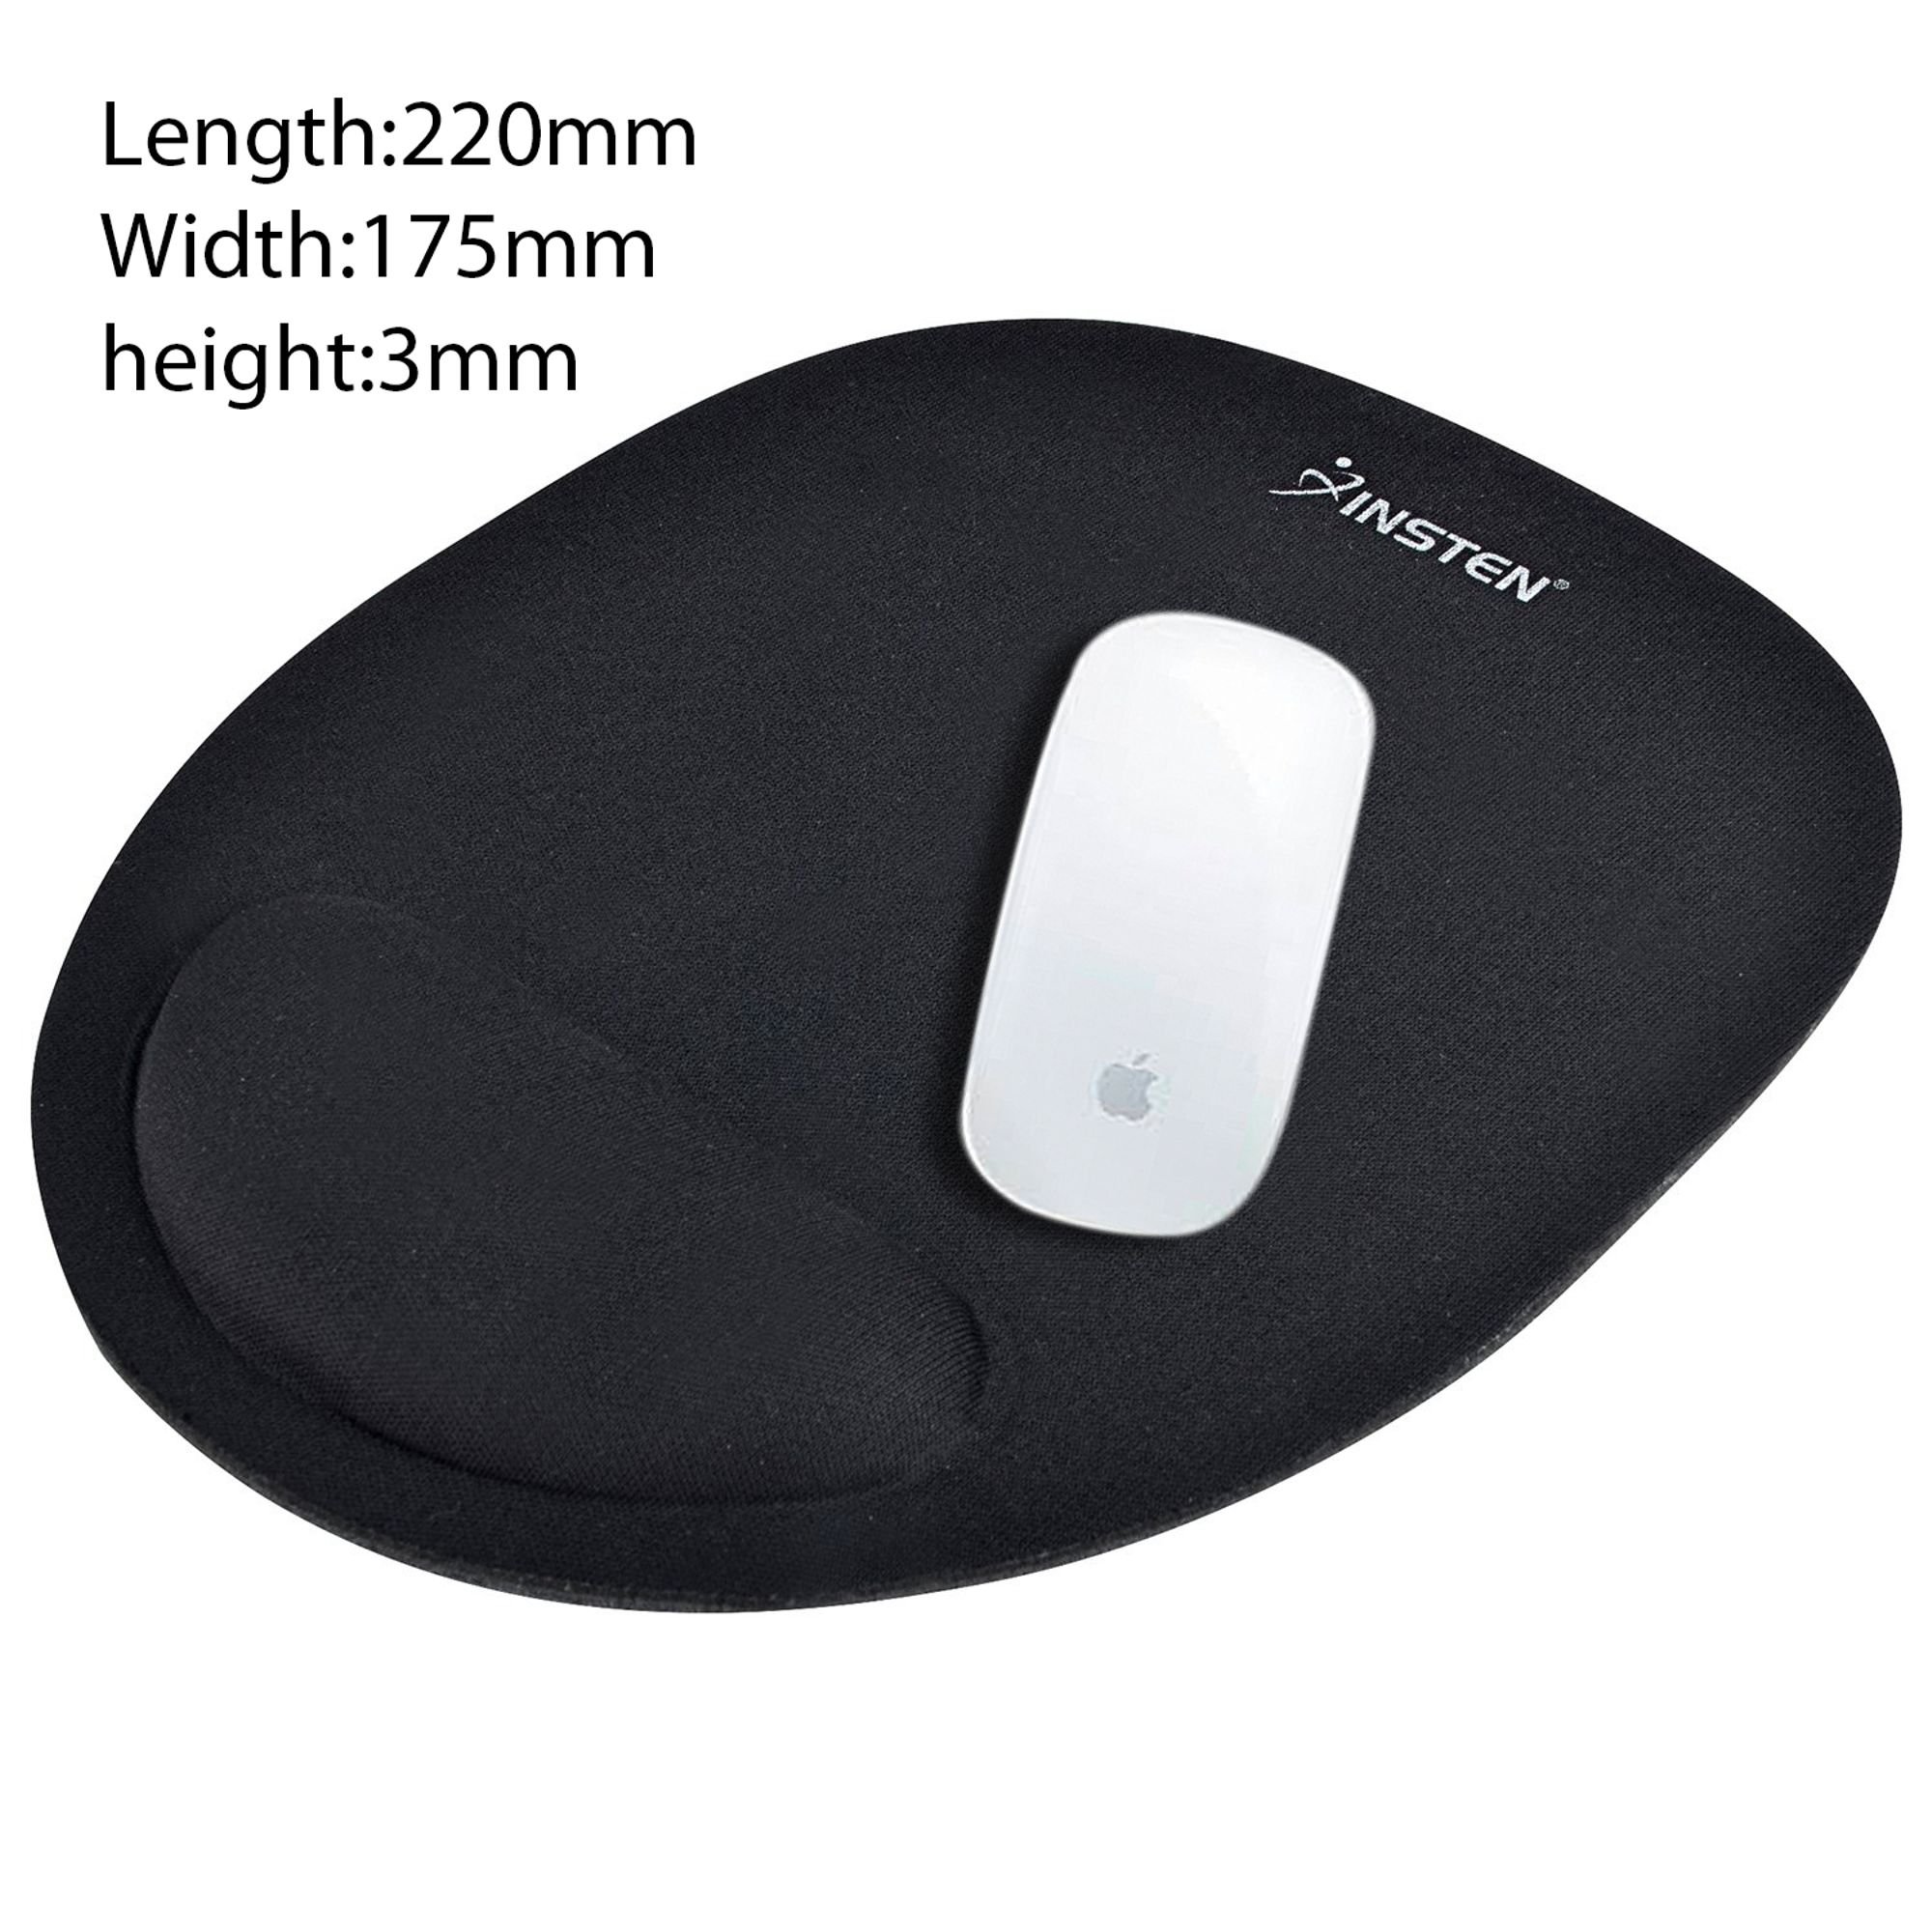 Insten Wrist Comfort Mouse Pad For Optical/ Trackball Mouse , Black